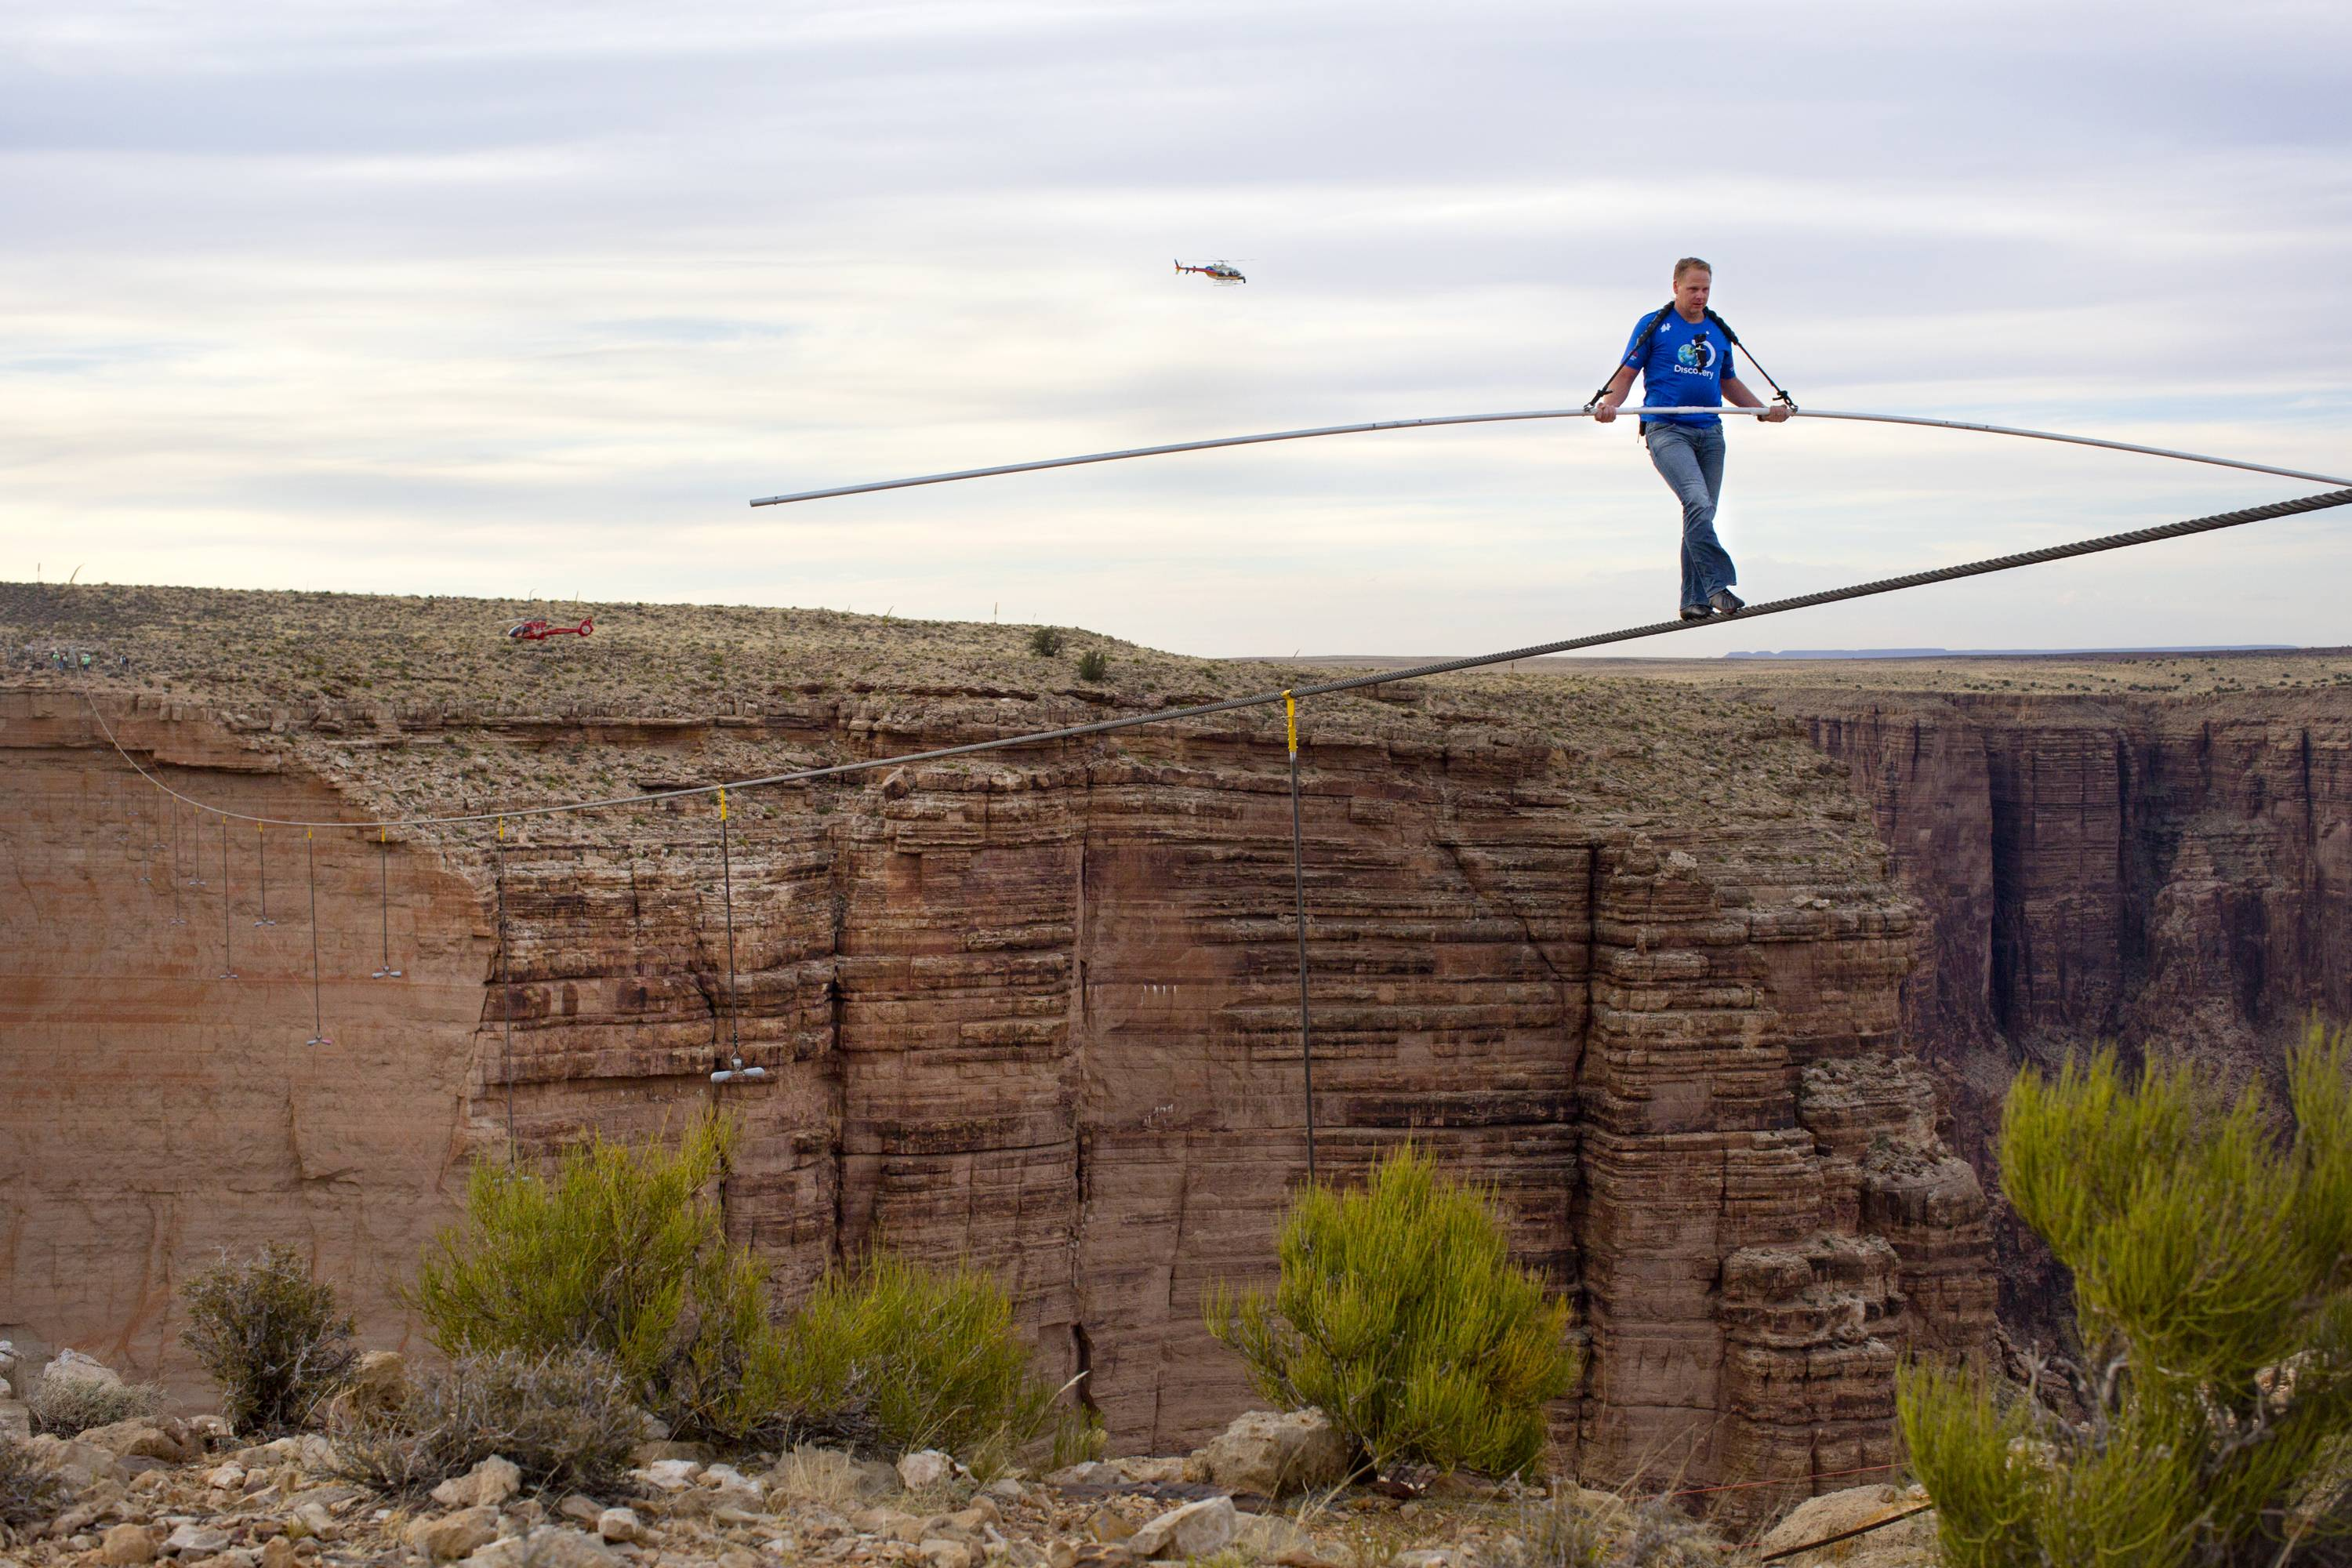 Nik Wallenda walks across the Little Colorado River Gorge on the Navajo Nation near Cameron, Ariz., for Discovery Channel last June 23. Wallenda is taking his tightrope to Chicago for a high-wire walk to be televised this fall.